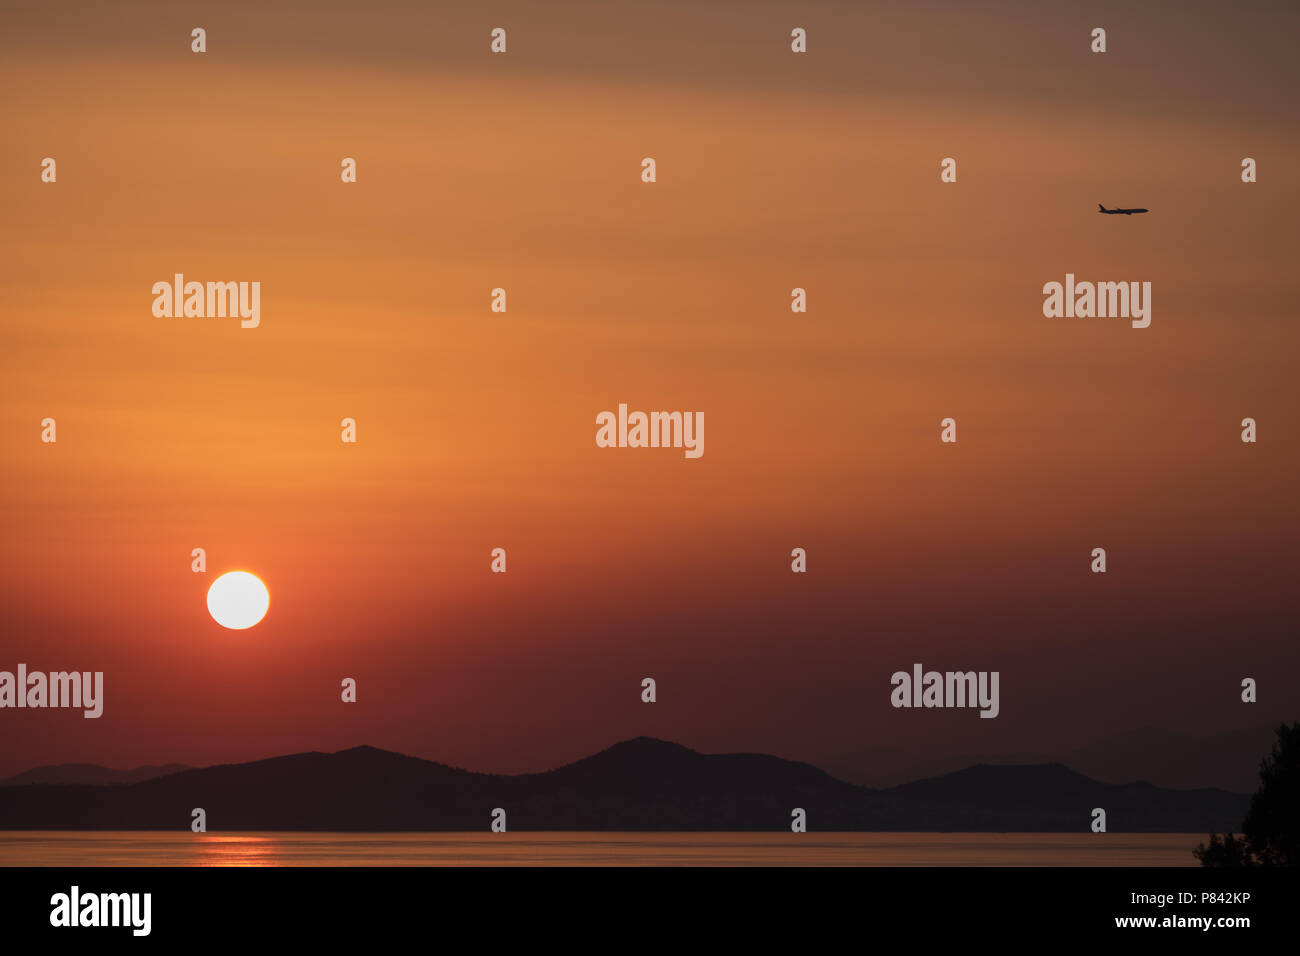 Airplane ( Aeroplane ) passing by a setting sun with gorgeous orange sky and Greek mountain landscape to its destination, East Attica, Greece, Europe. Stock Photo